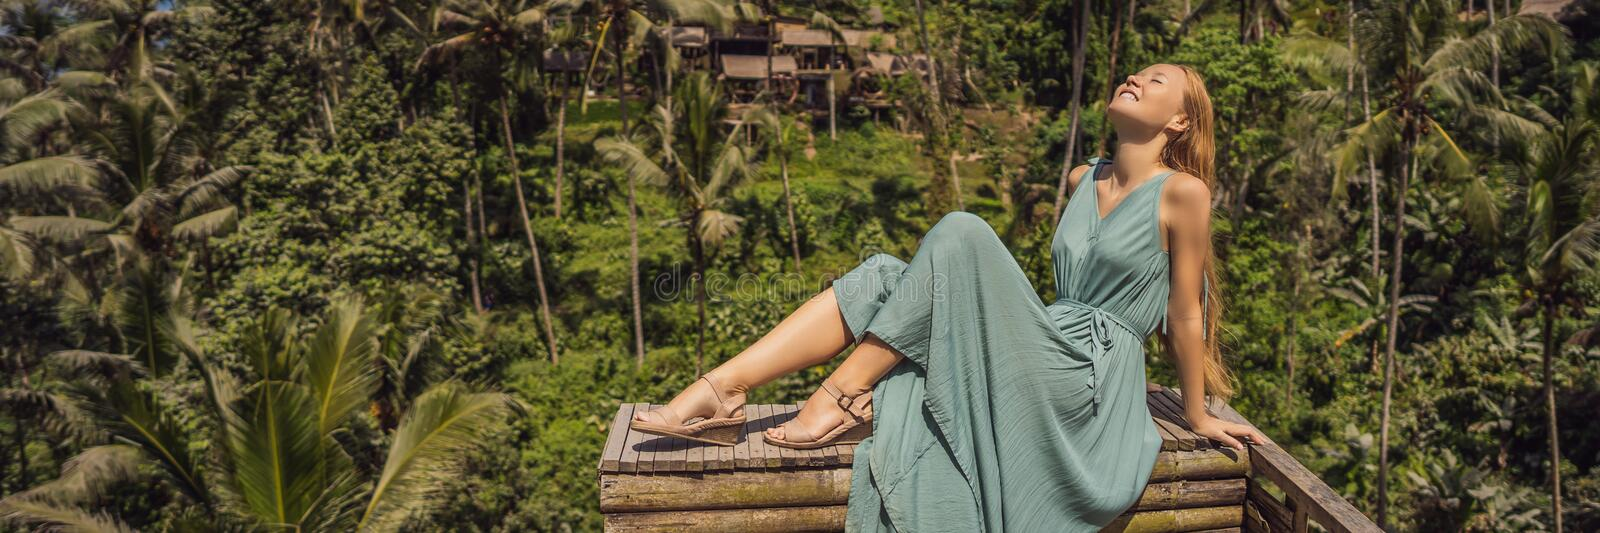 BANNER, LONG FORMAT Beautiful young woman walk at typical Asian hillside with rice farming, mountain shape green cascade royalty free stock image